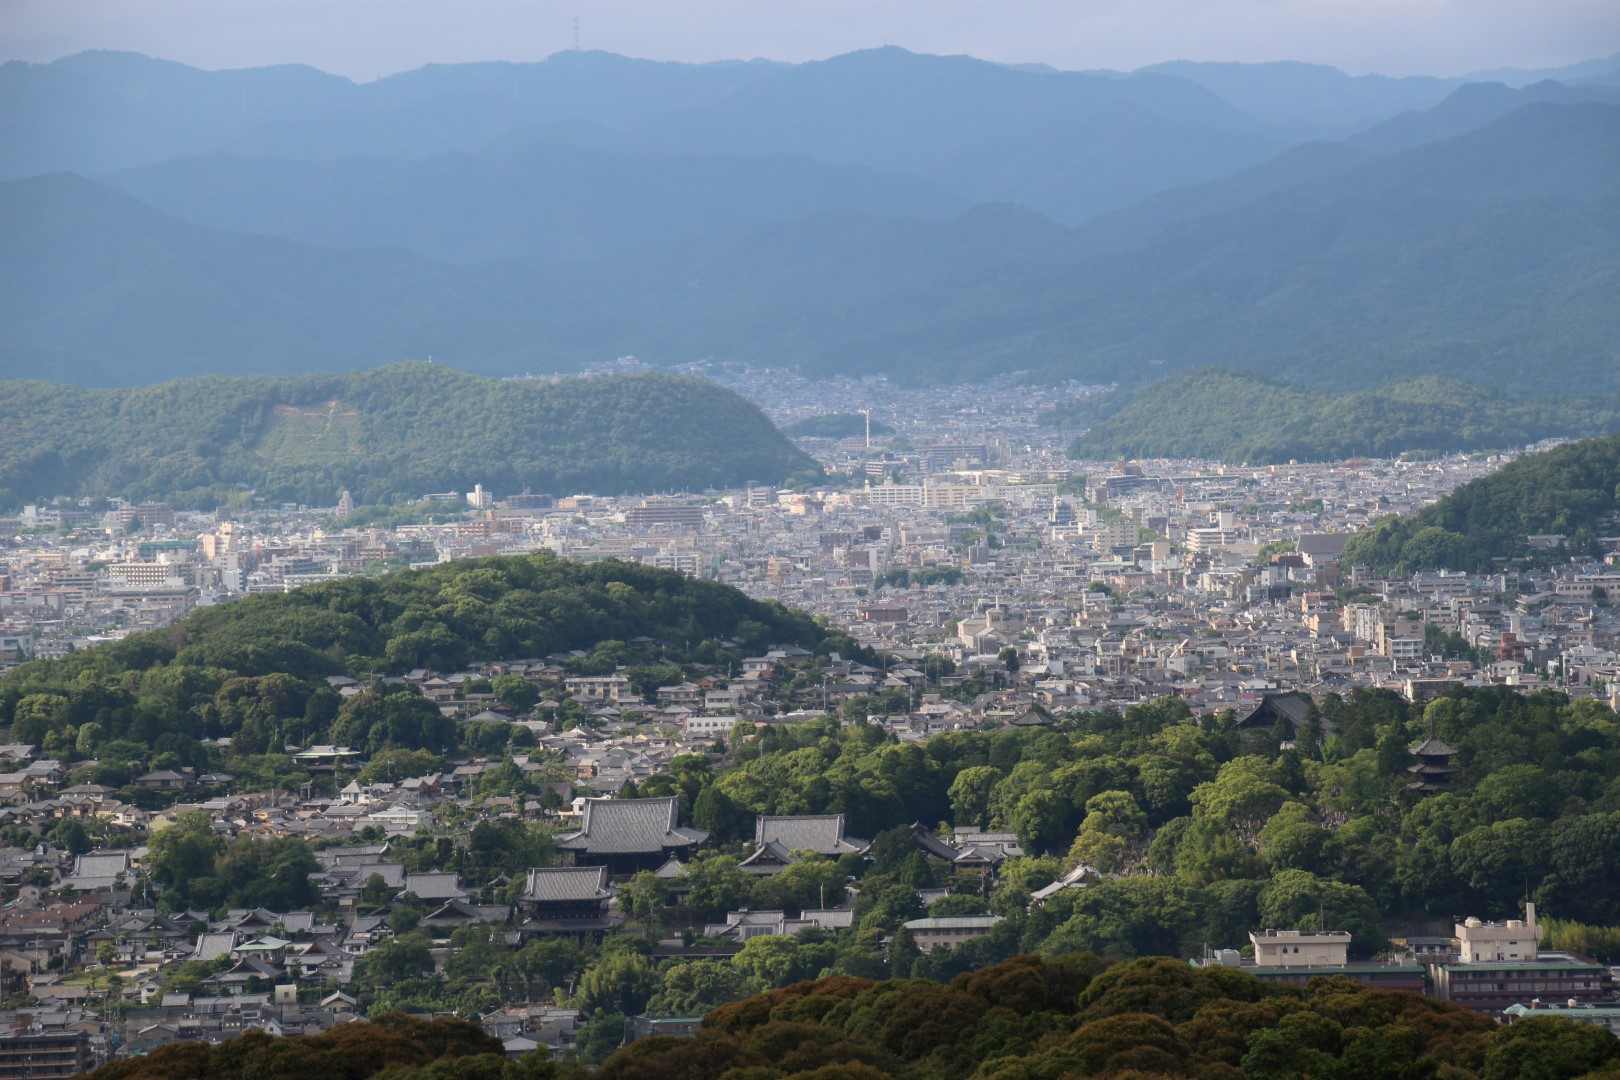 Kyoto today – whatever would Kammu have thought?